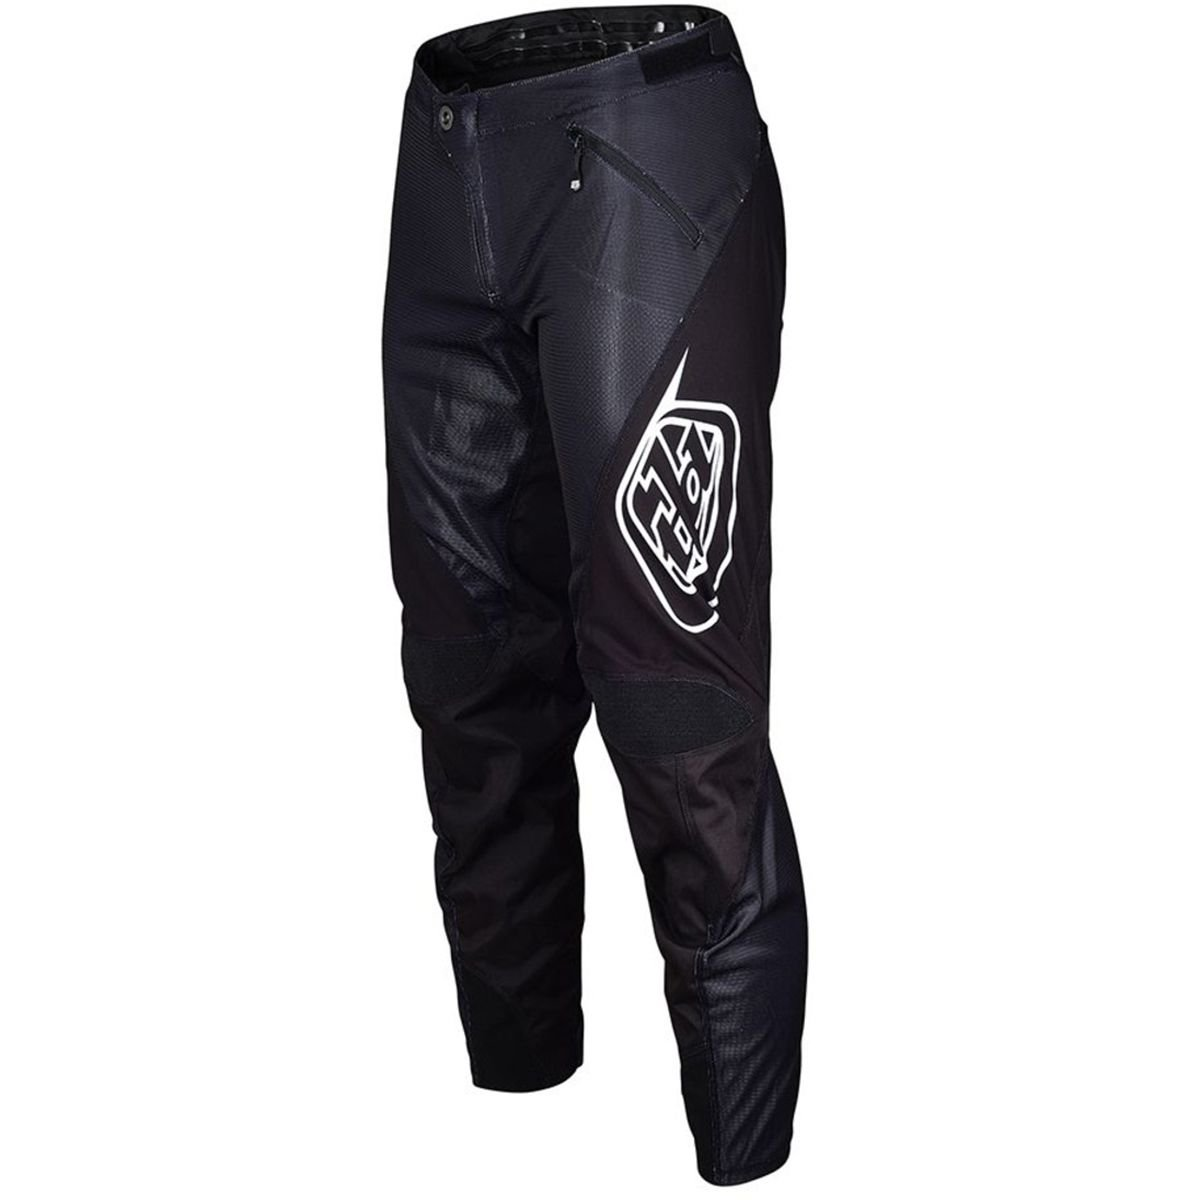 Troy Lee Designs Sprint Pant - Men's Black, 30 by Troy Lee Designs